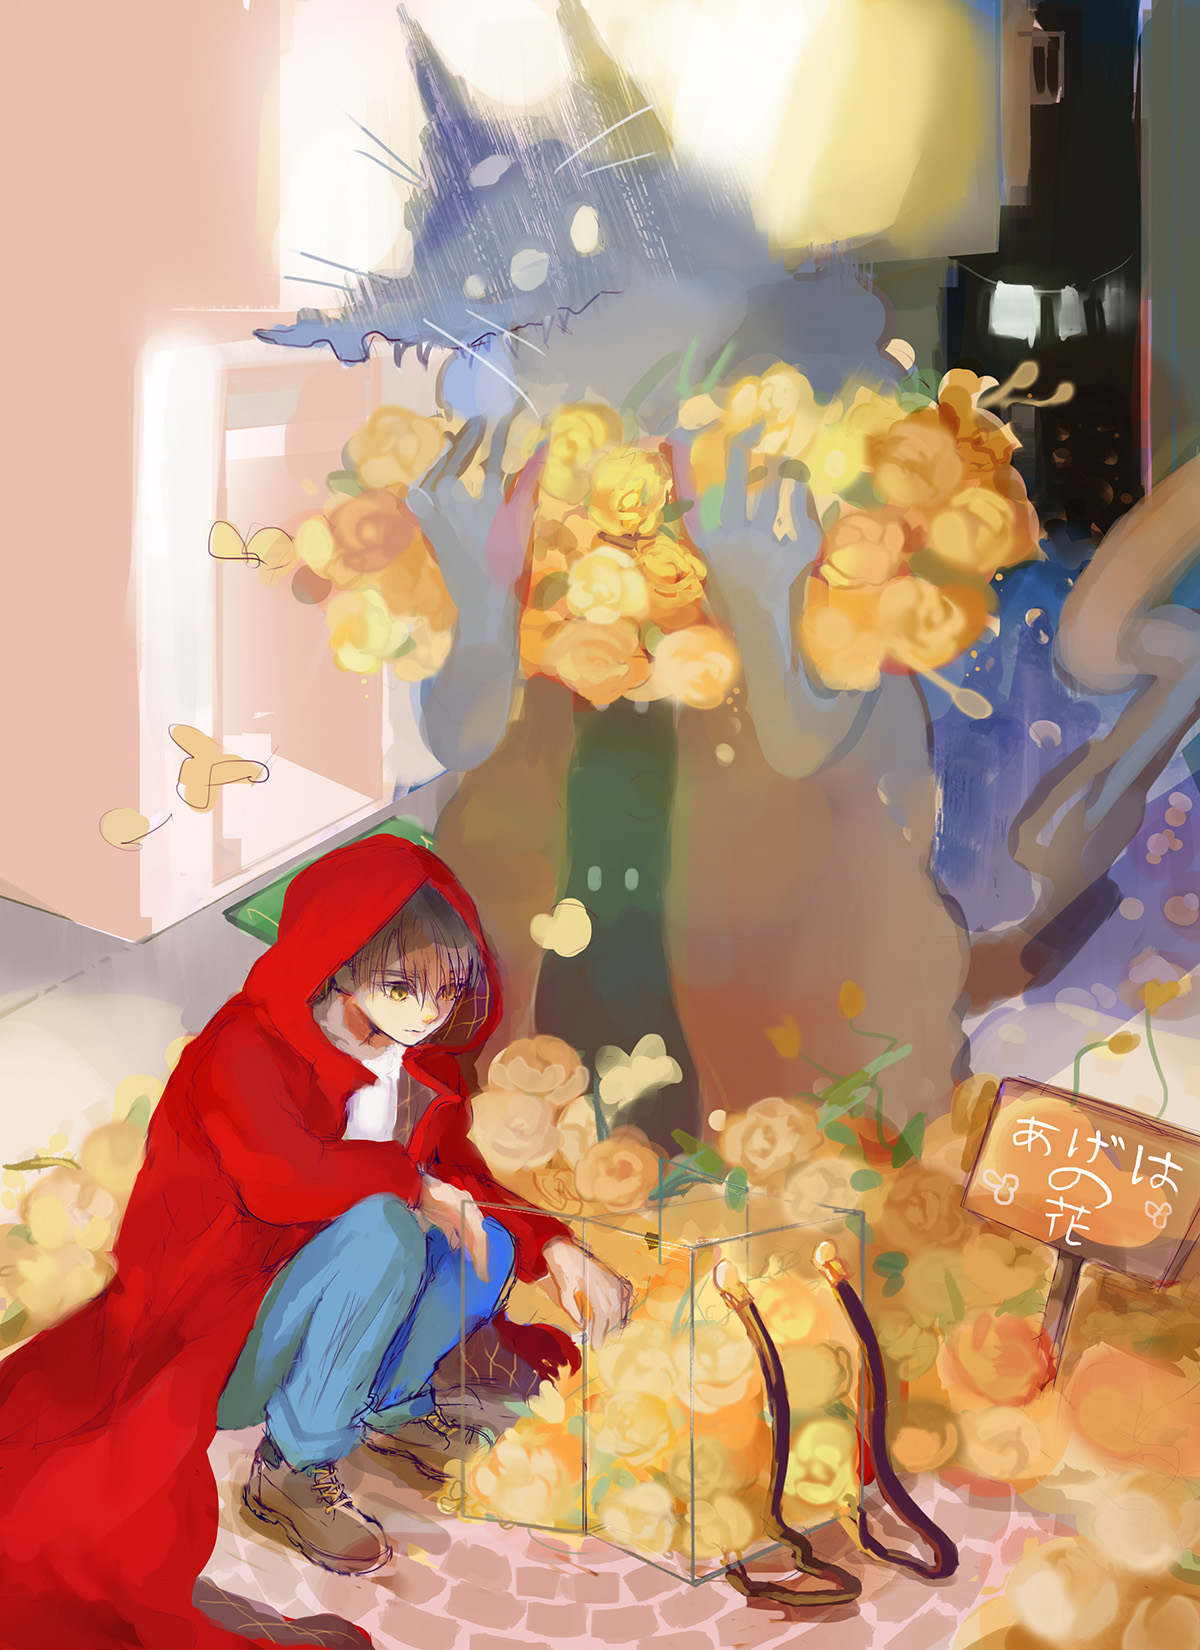 An illustration of a girl in a red hooded sweatshirt.